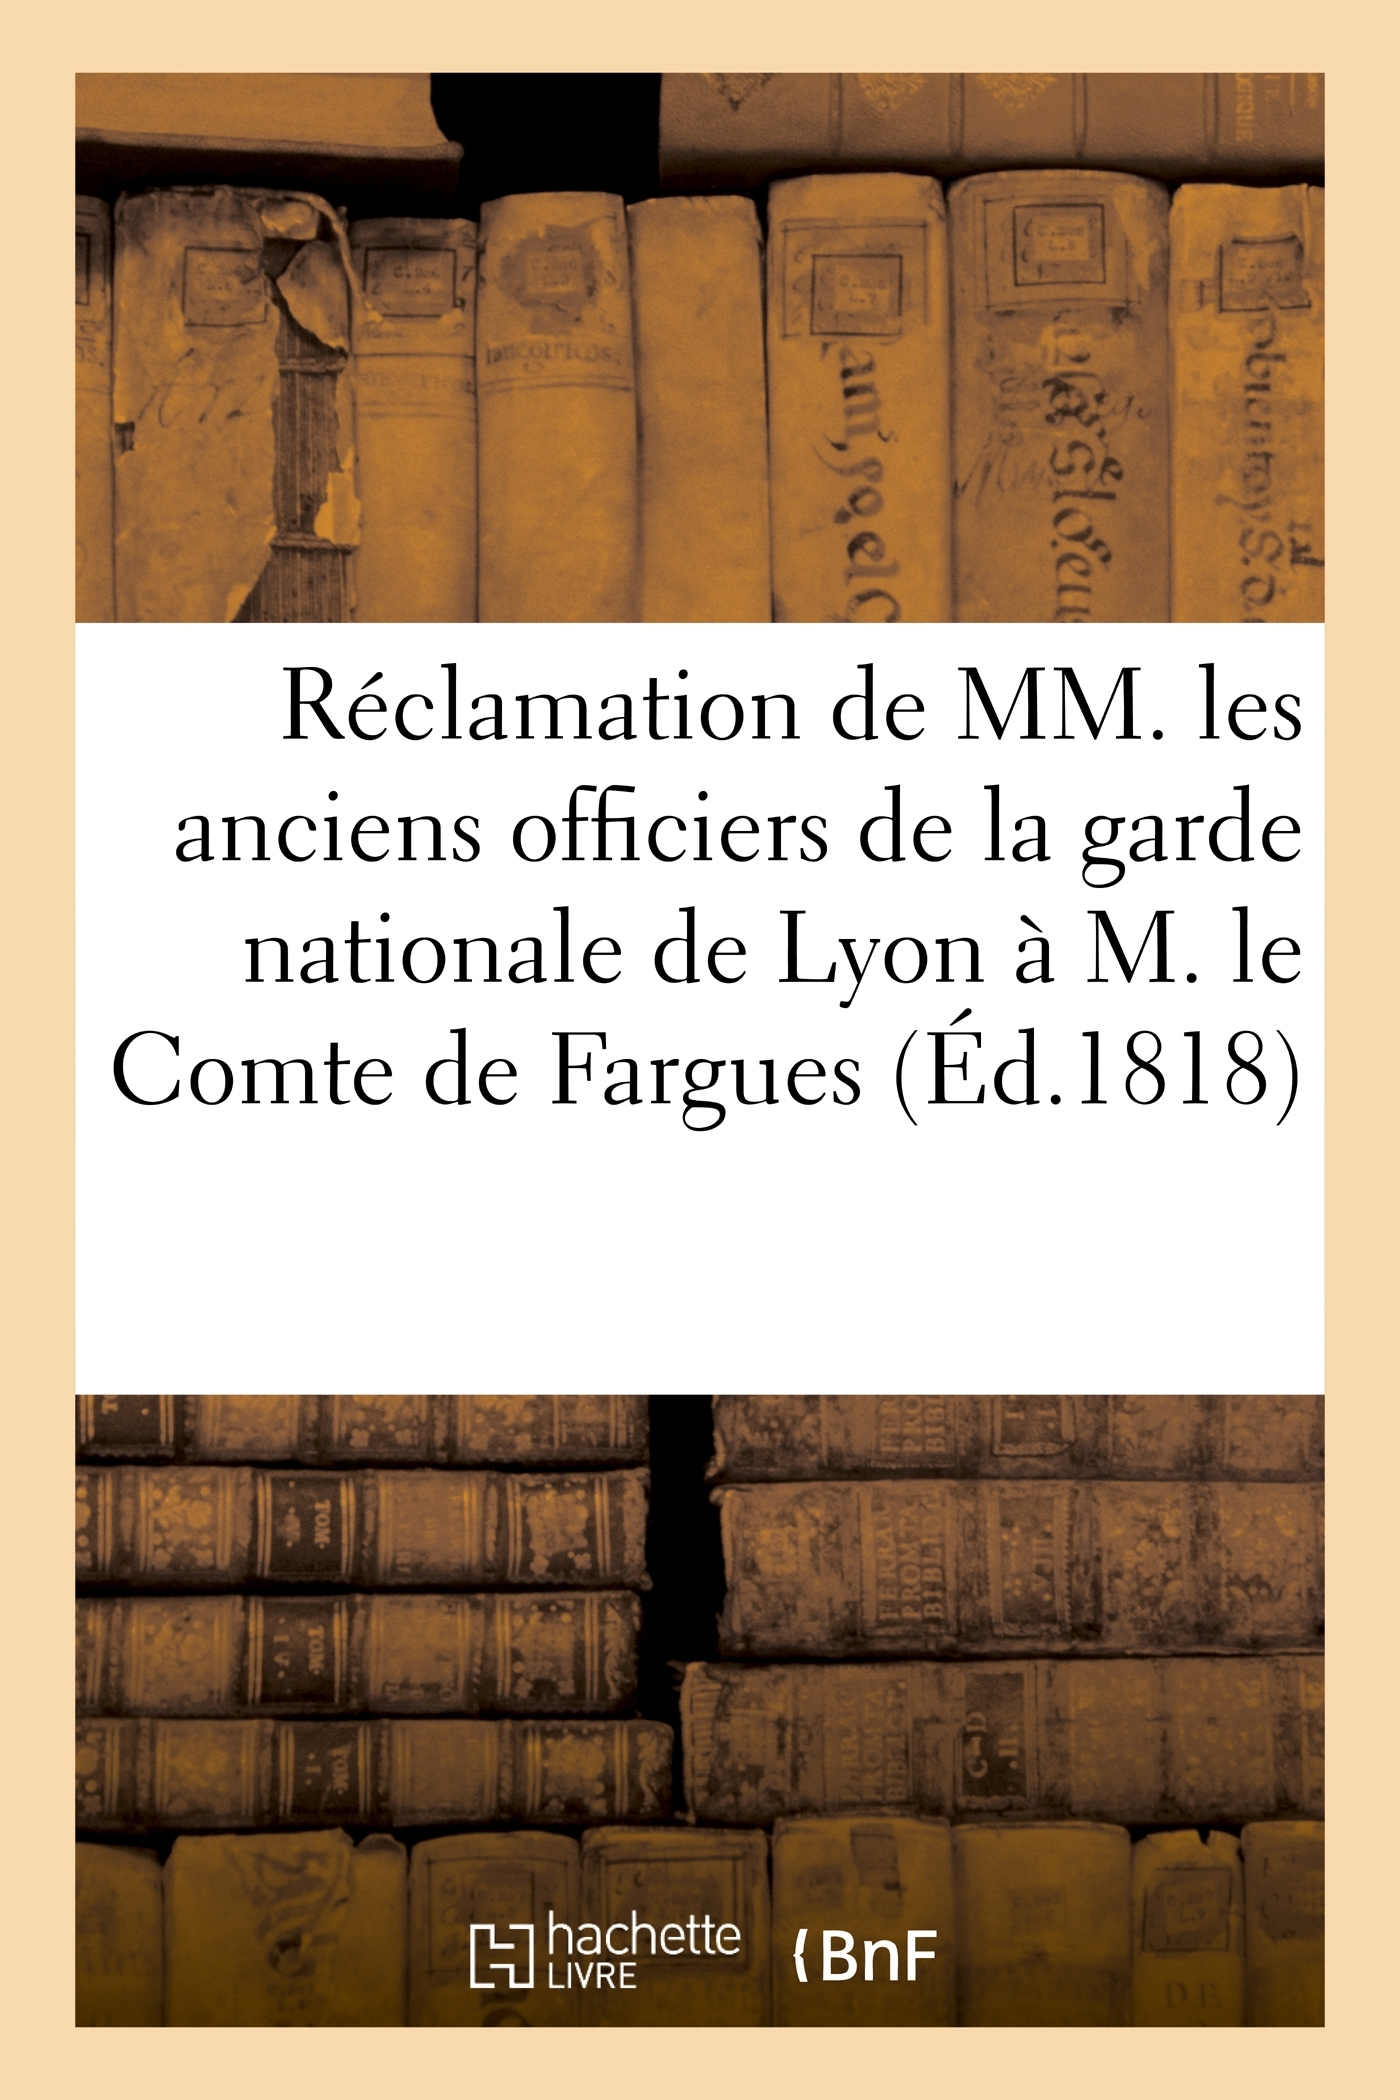 RECLAMATION DE MM. LES ANCIENS OFFICIERS DE LA GARDE NATIONALE DE LYON A M. LE COMTE DE FARGUES - ,